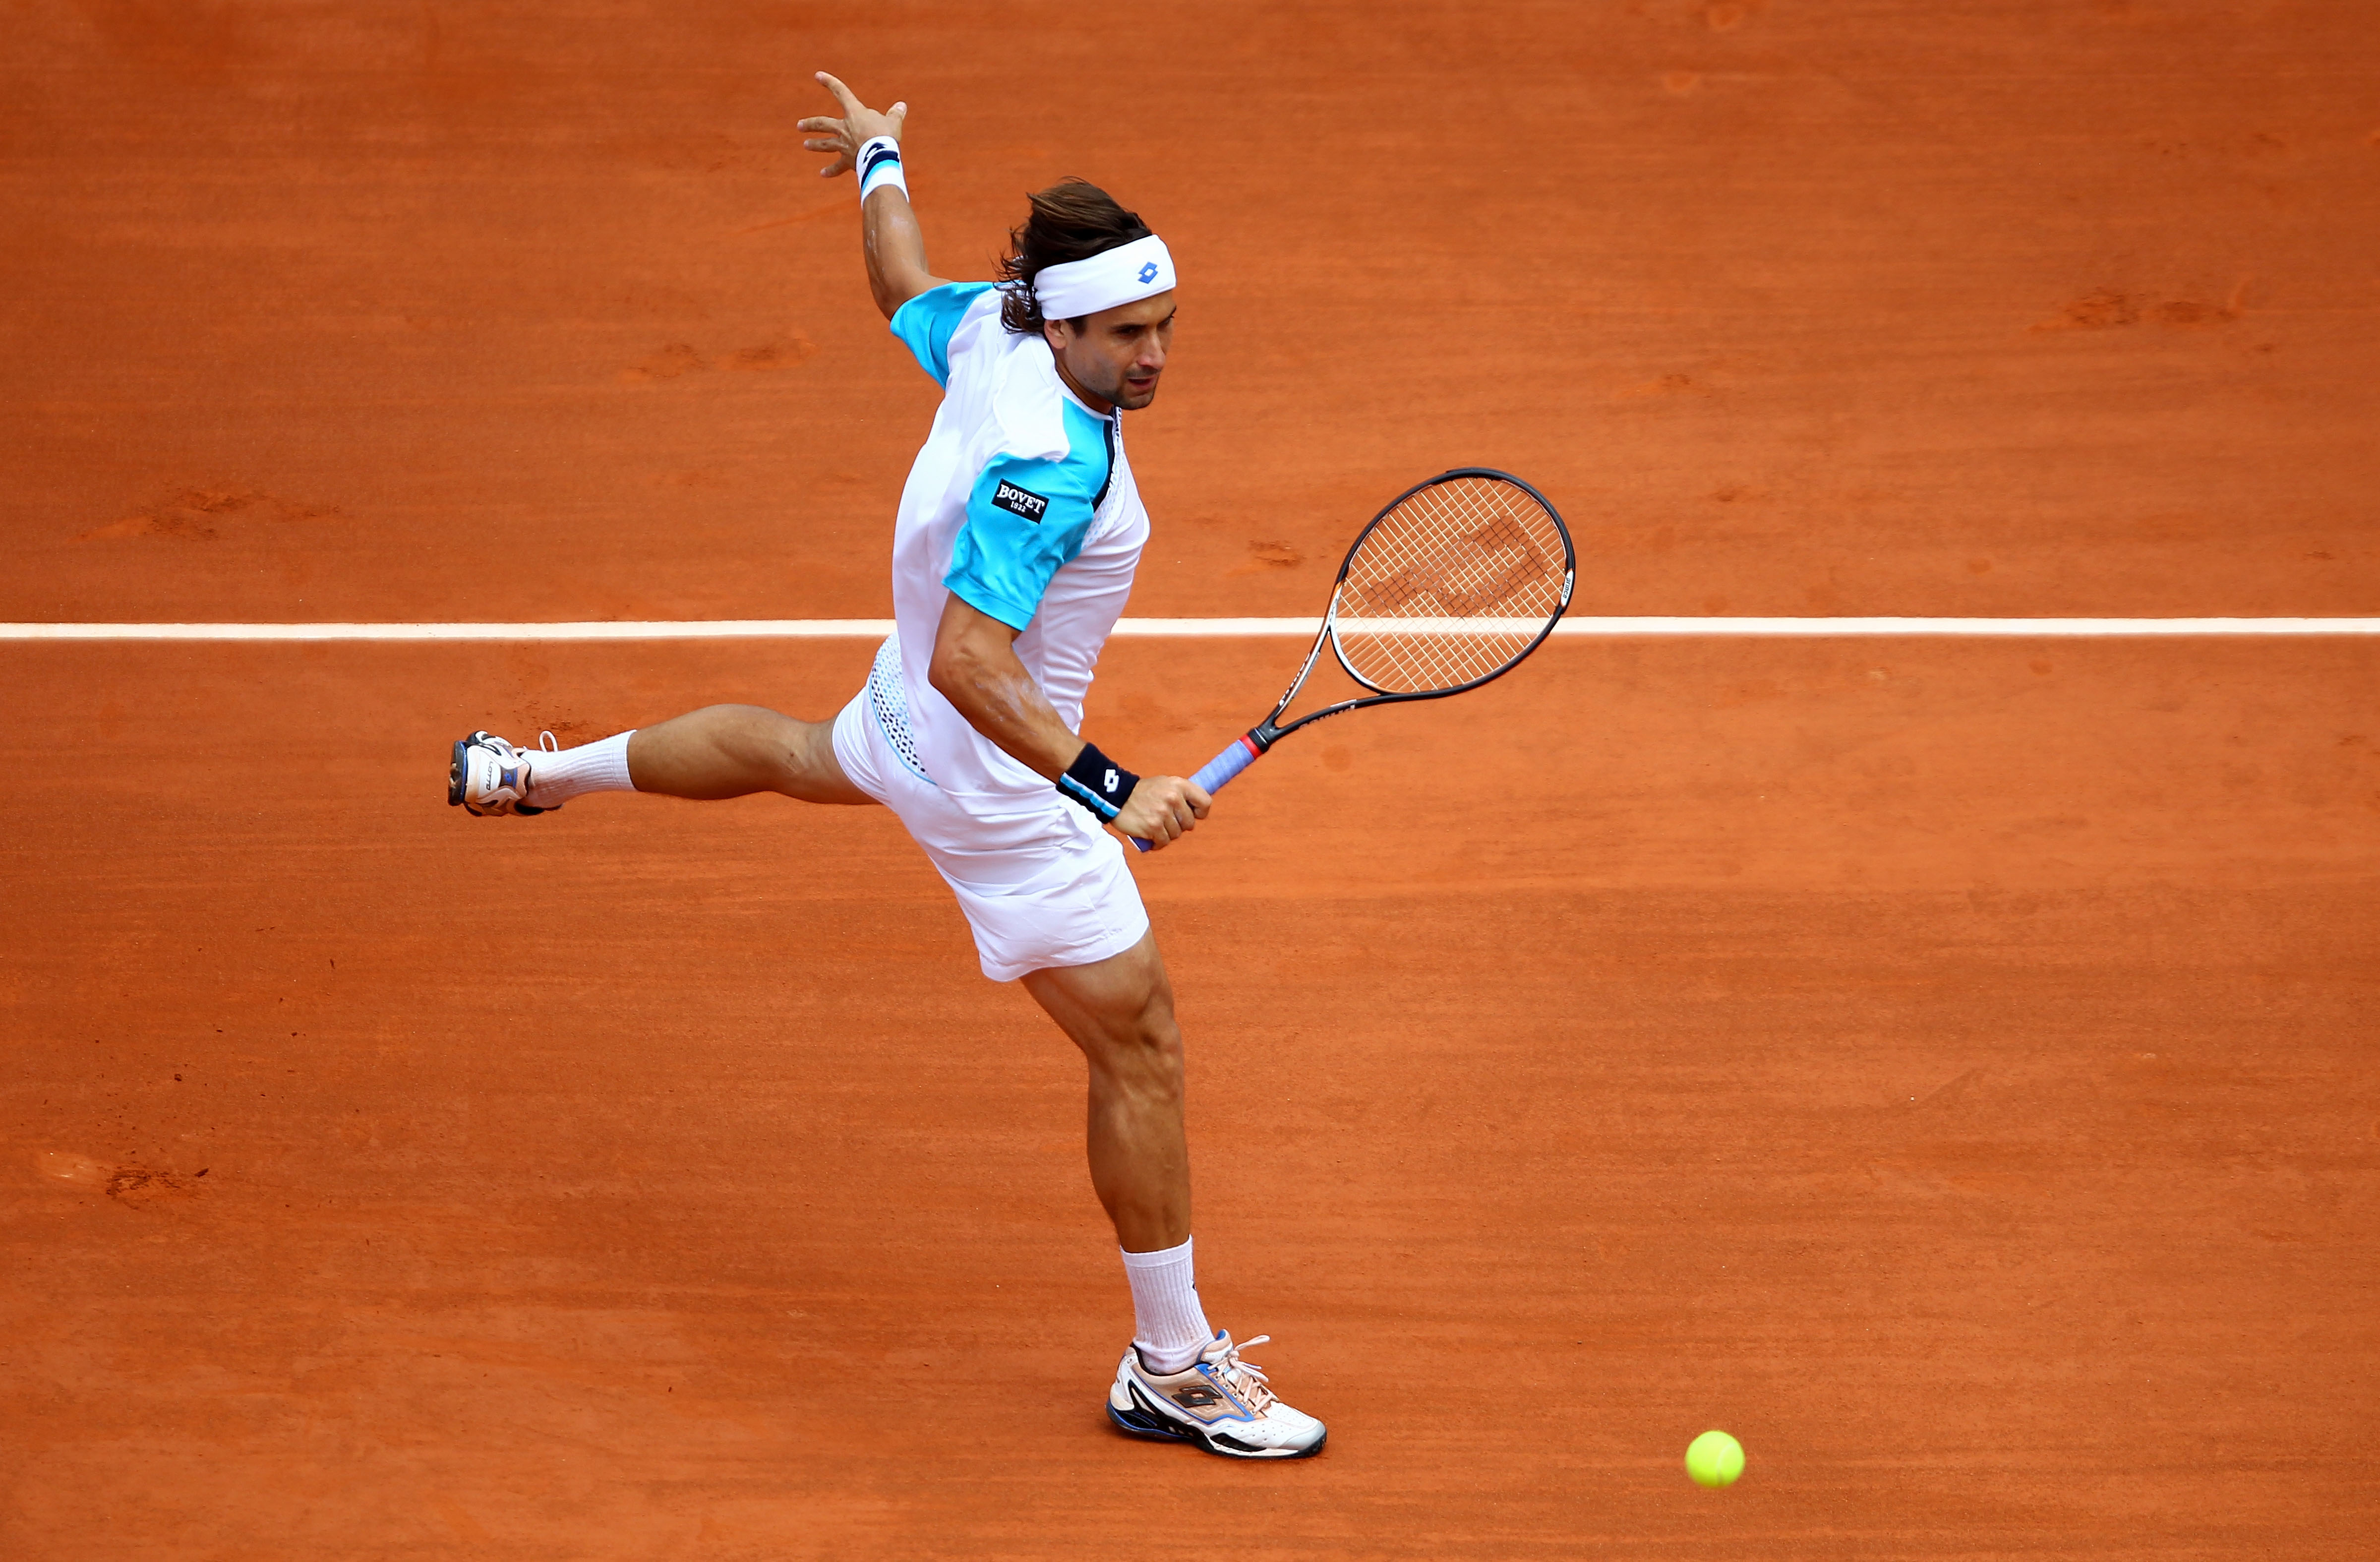 PARIS, FRANCE - MAY 22:  David Ferrer of Spain plays a backhand during the men's singles round one match  between David Ferrer of Spain and Jarkko Nieminen of Finland on day one of the French Open at Roland Garros on May 22, 2011 in Paris, France.  (Photo